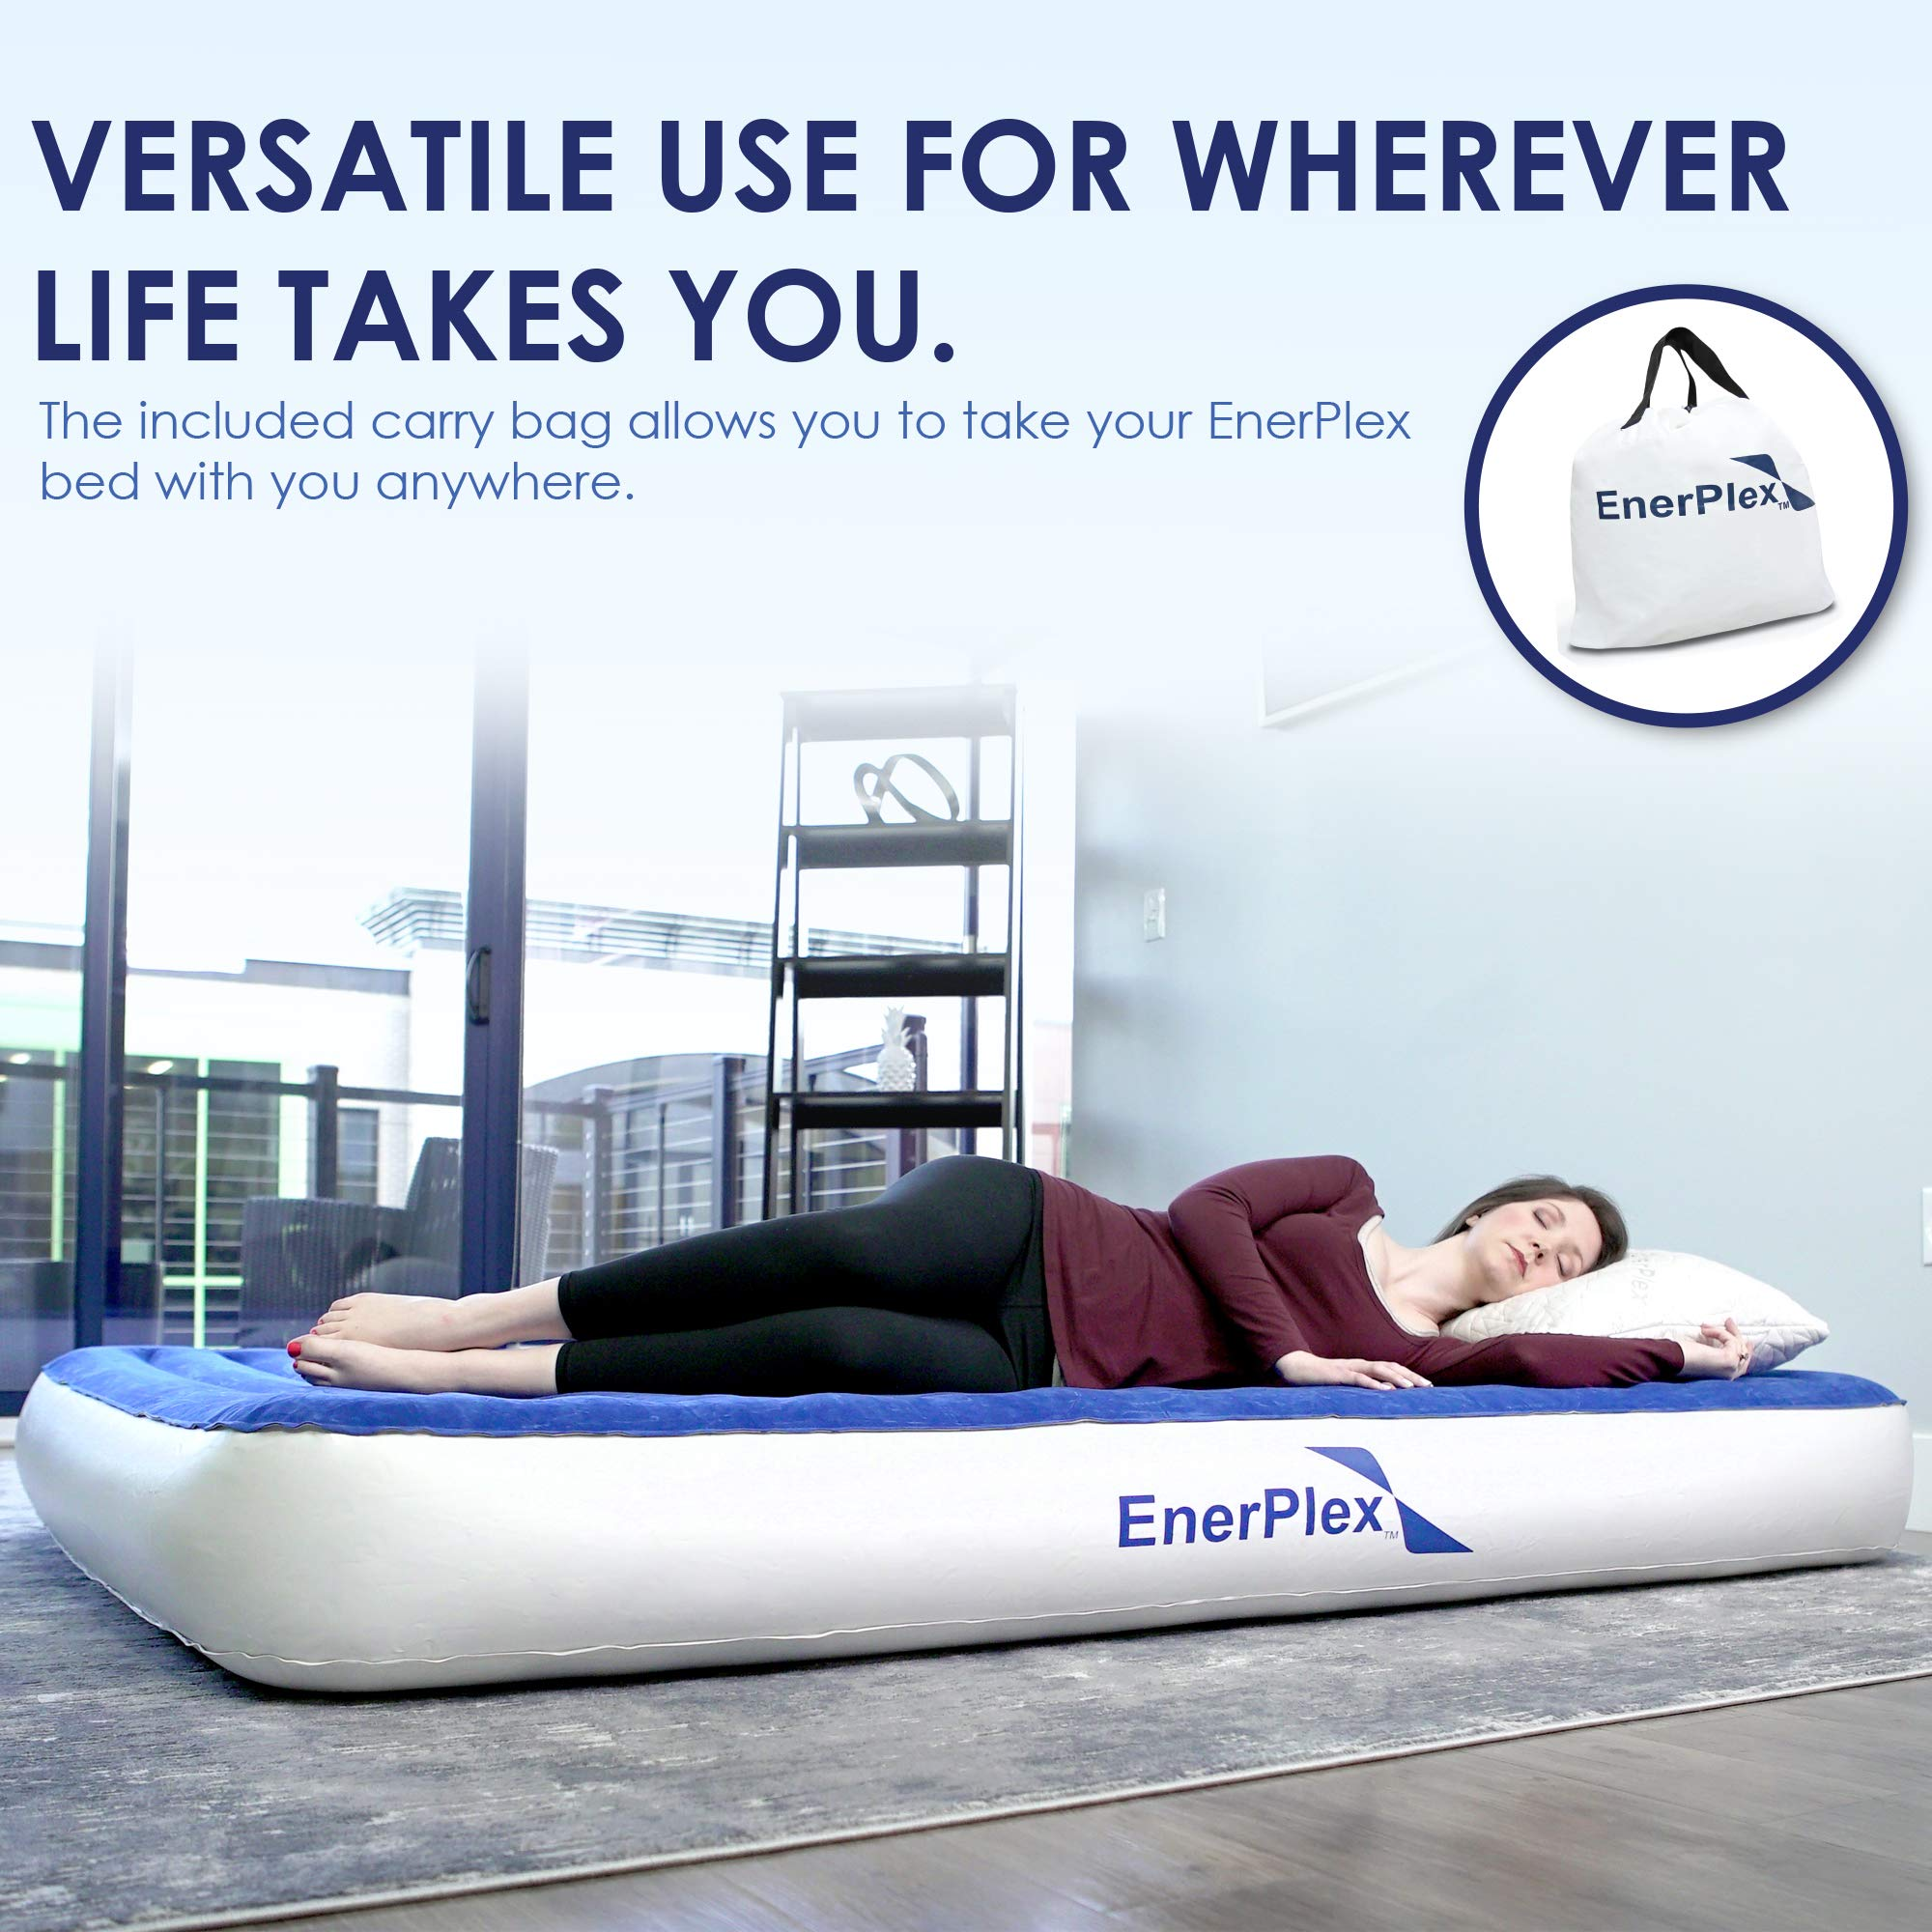 EnerPlex 2019 Camping Luxury Queen Size Air Mattress Camping Queen Airbed with High Speed Wireless Pump Single High Inflatable Blow Up Bed for Home Camping Travel 2-Year Warranty by EnerPlex (Image #6)